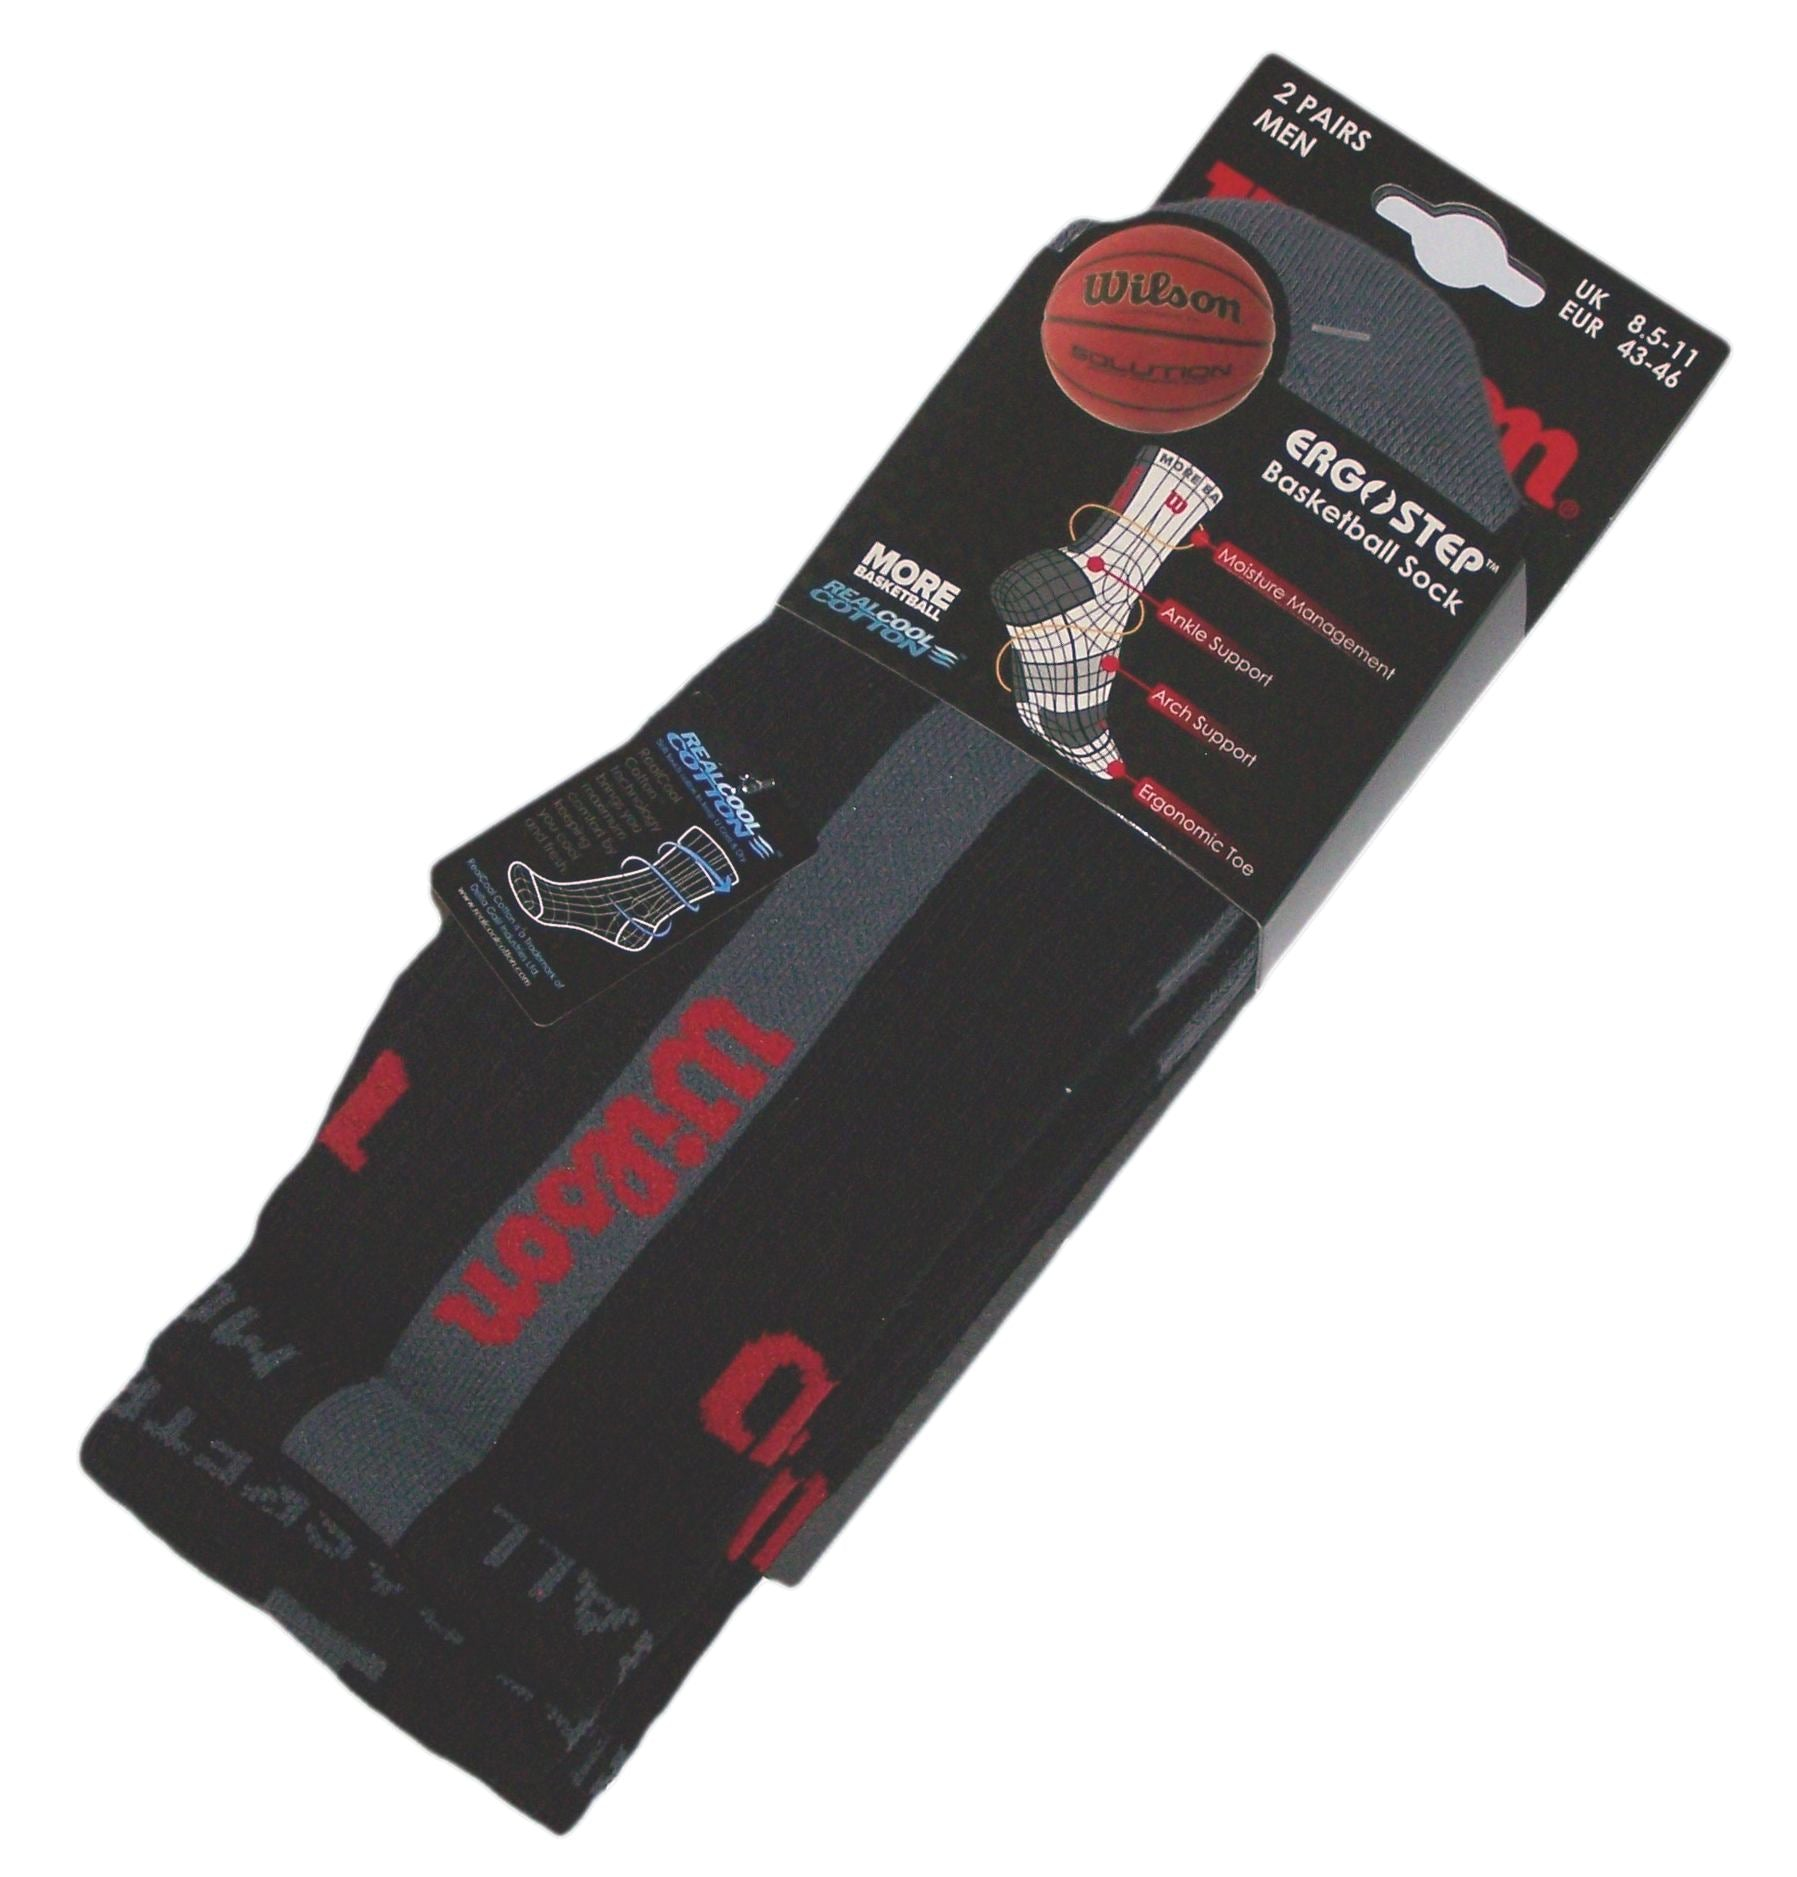 Wilson Ergostep More Basketball Crew Socks (2 Pair Pack) - Black/Grey/Red